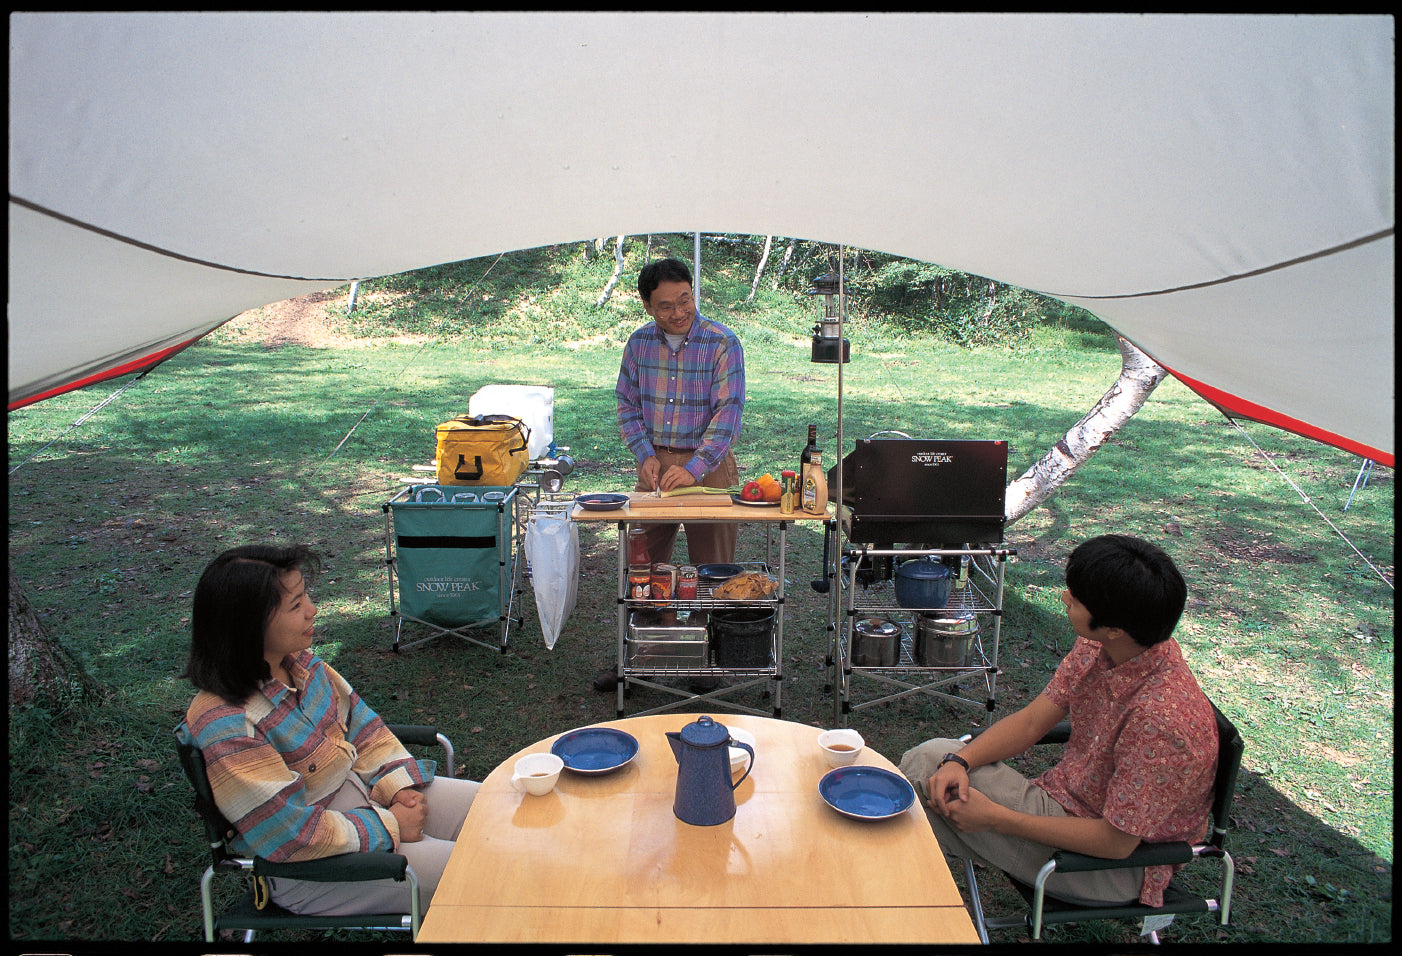 30 Years Ago | Auto-Camping Arrives in Japan – Snow Peak